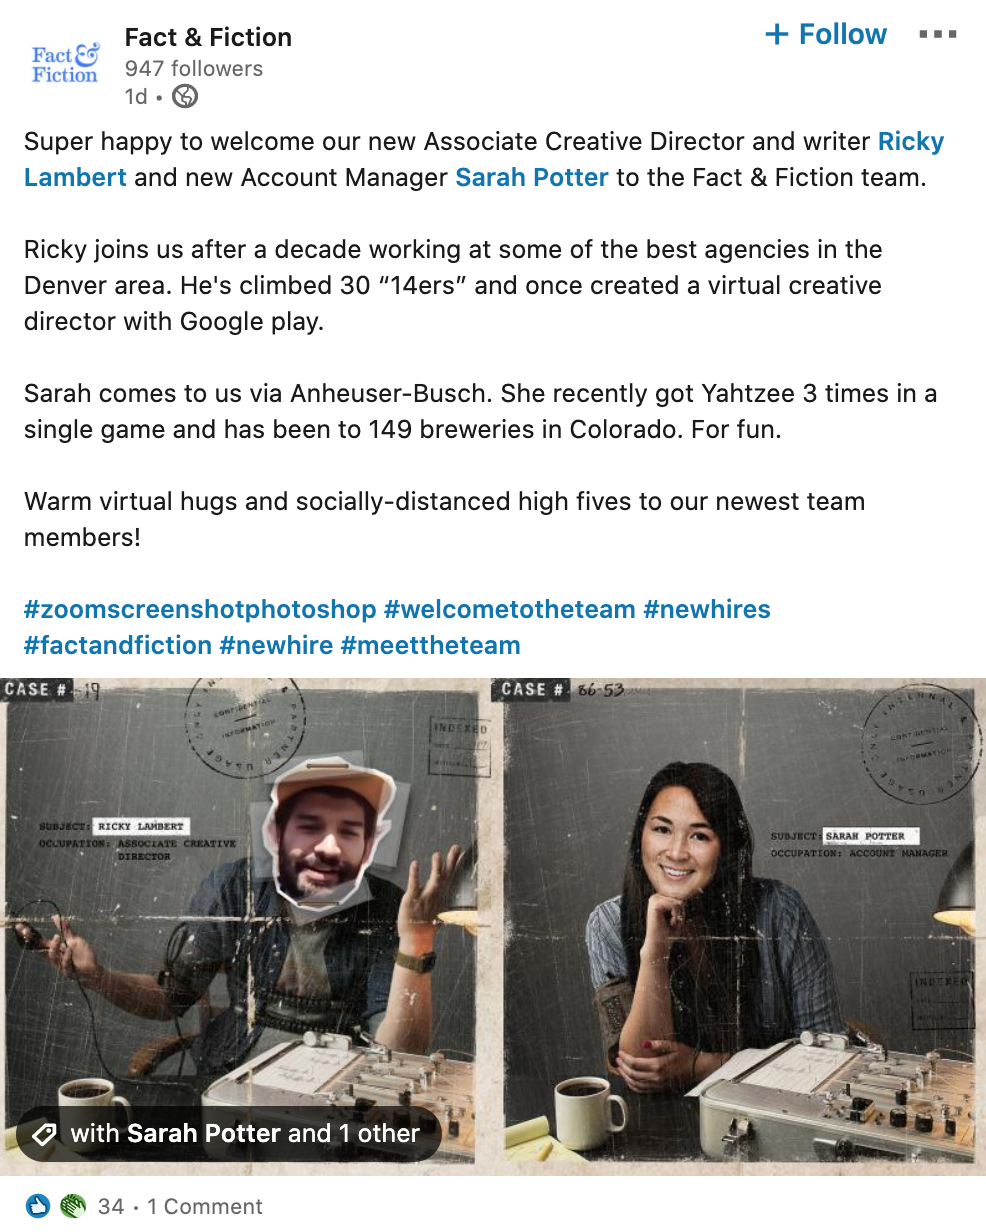 "LinkedIn post welcoming new hires to the company Fact & Fiction. Post includes a photo of new employees photoshopped into an image of someone hooked up to a lie detector test, plus the following copy:  Super happy to welcome our new Associate Creative Director and writer Ricky Lambert and new Account Manager Sarah Potter to the Fact & Fiction team.  Ricky joins us after a decade working at some of the best agencies in the Denver area. He's climbed 30 ""14ers"" and once created a virtual creative director with Google play.  Sarah comes to us via Anheuser-Busch. She recently got Yahtzee 3 times in a single game and has been to 149 breweries in Colorado. For fun.  Warm virtual hugs and socially-distanced high fives to our newest team members!  #zoomscreenshotphotoshop #welcometotheteam #newhires #factandfiction #newhire #meettheteam"